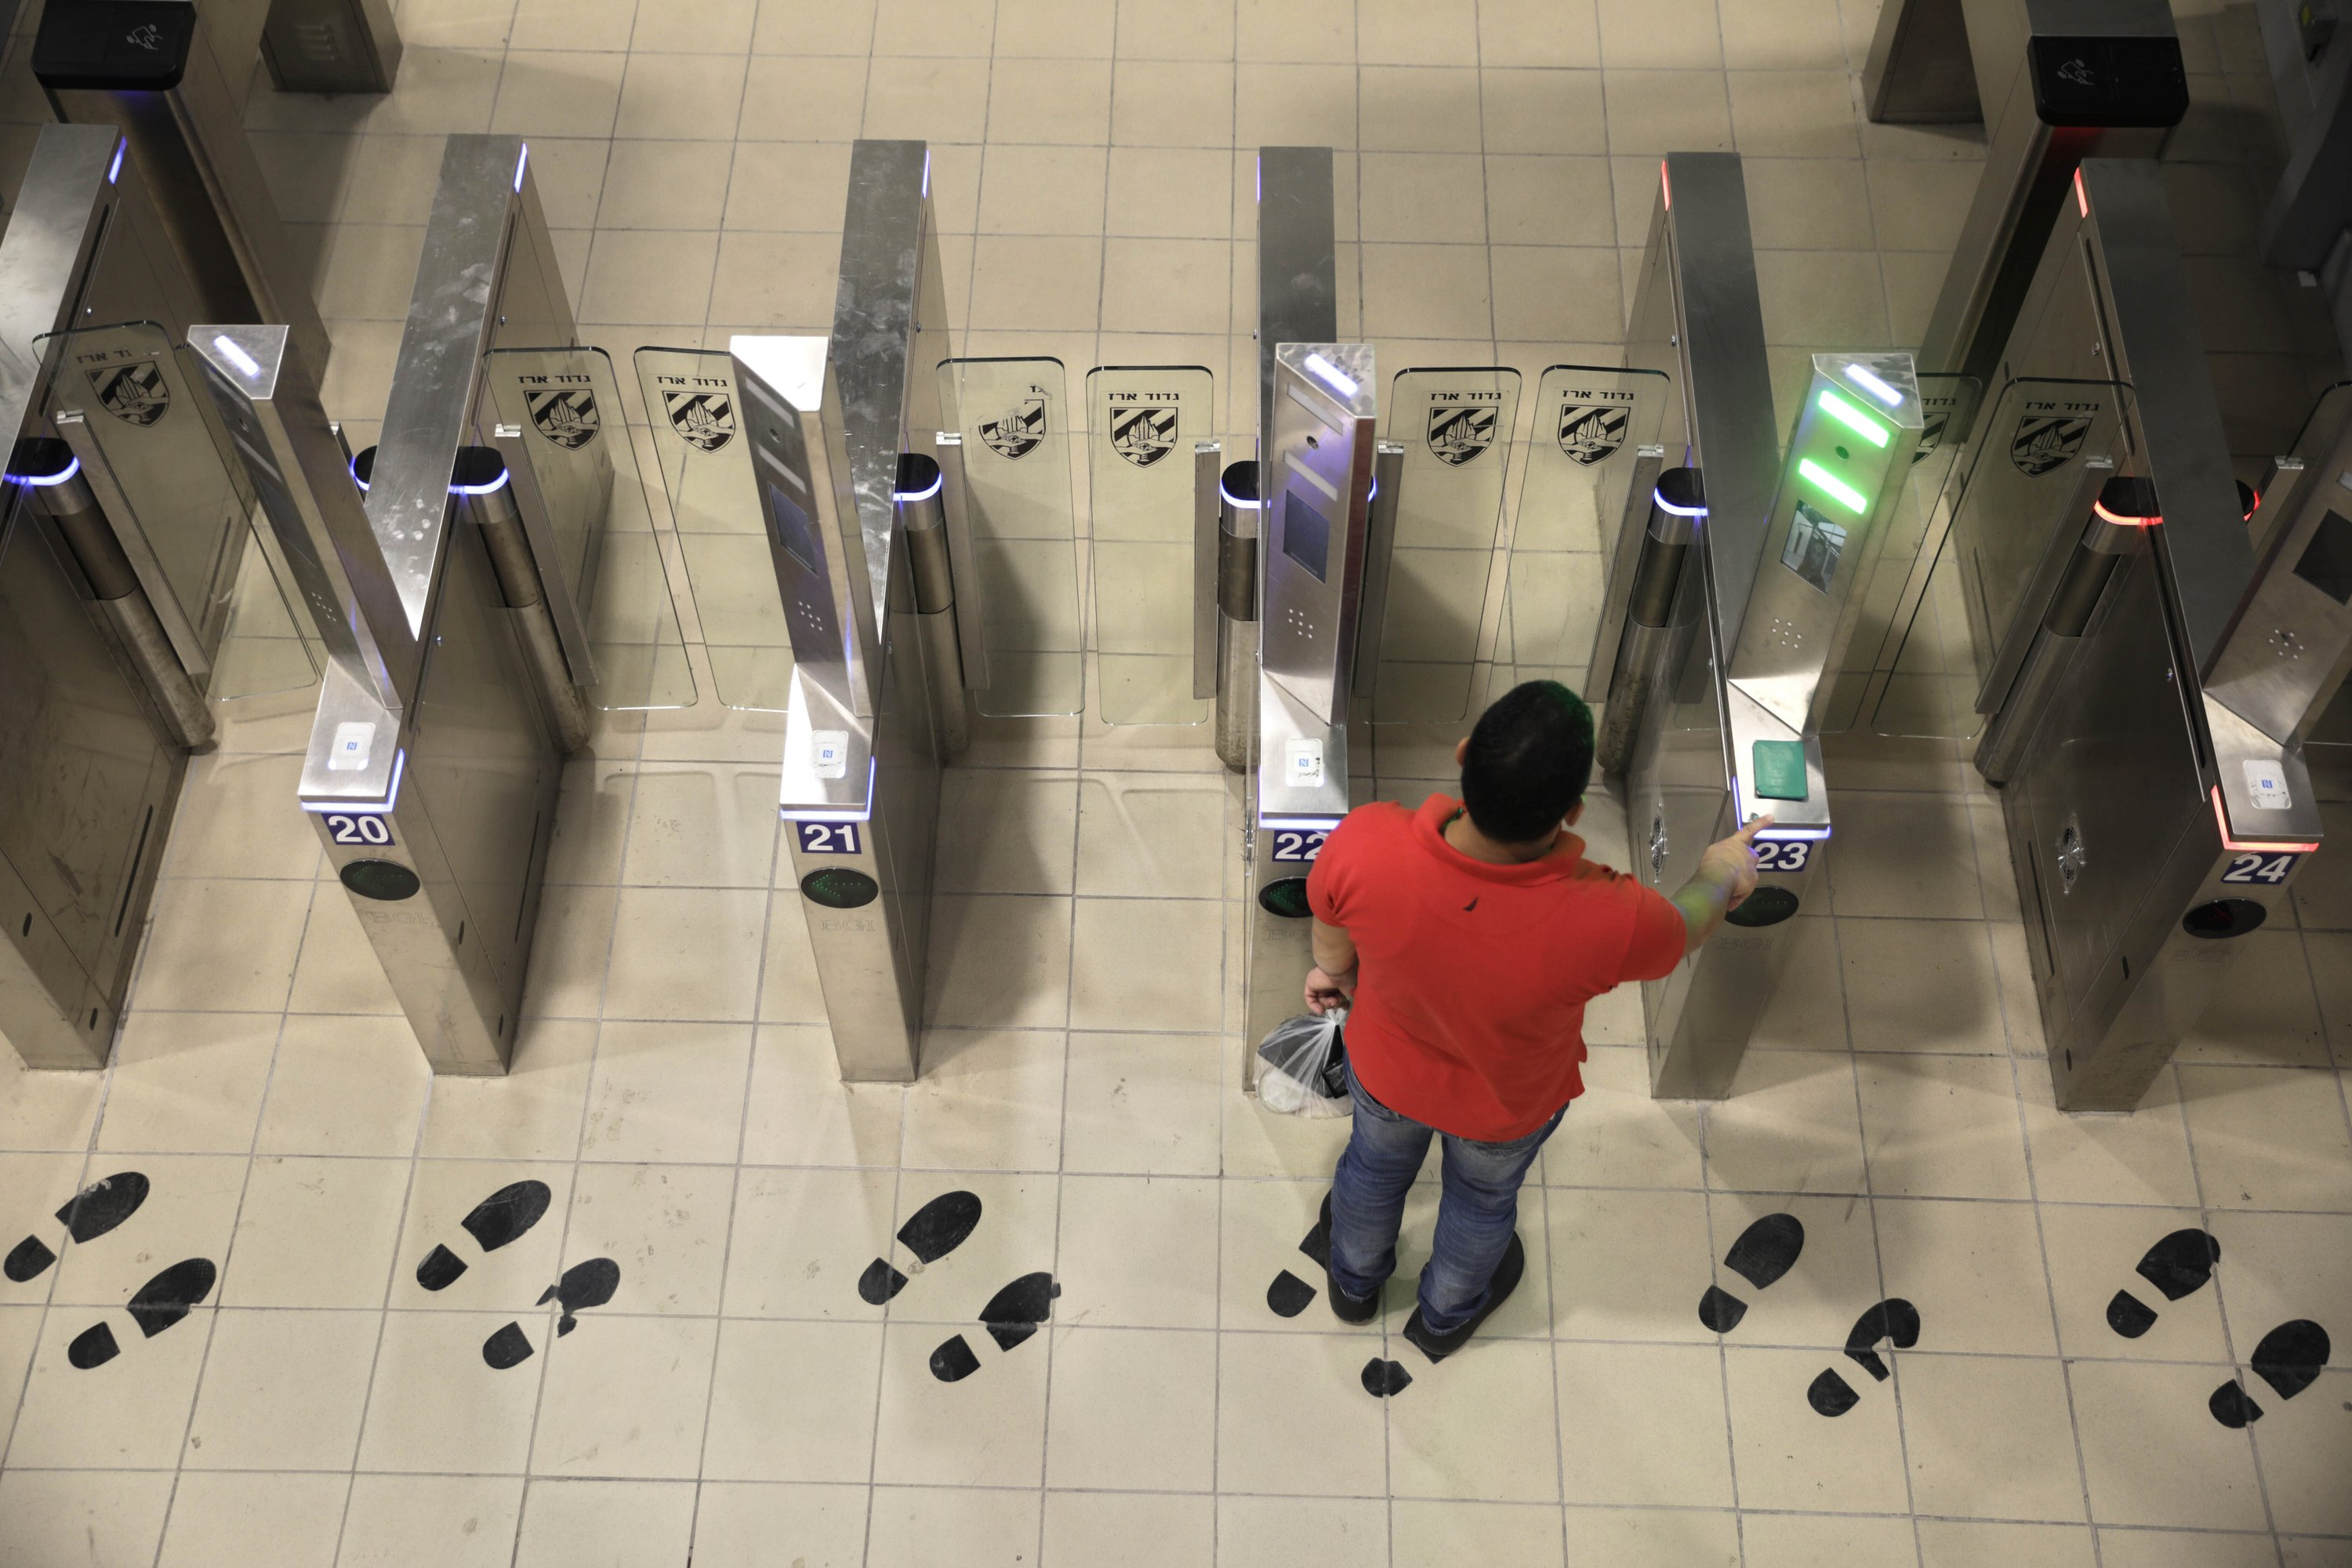 Israel invests in high-tech upgrades at West Bank crossings